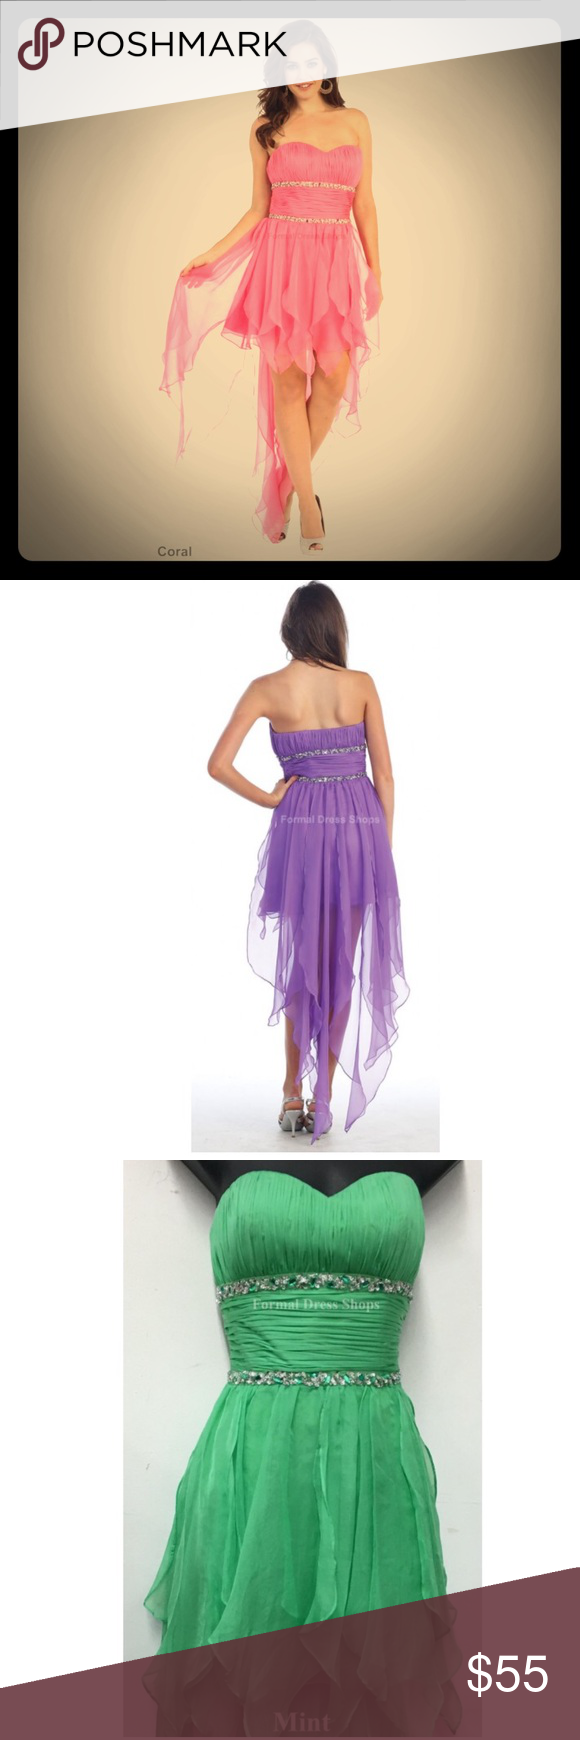 Cute fairy high low dress A great high low dress for semi formal party. Can be worn as a costume for Halloween as a fairy or tinkerbell (mint color). Mayqueen 886. Comes in 7 colors: coral, violet, royal blue, mint, black, red, and yellow. Comes in sizes 4-16. Let me know which color you're interested in so I can make sure your size is available. Mayqueen Dresses High Low